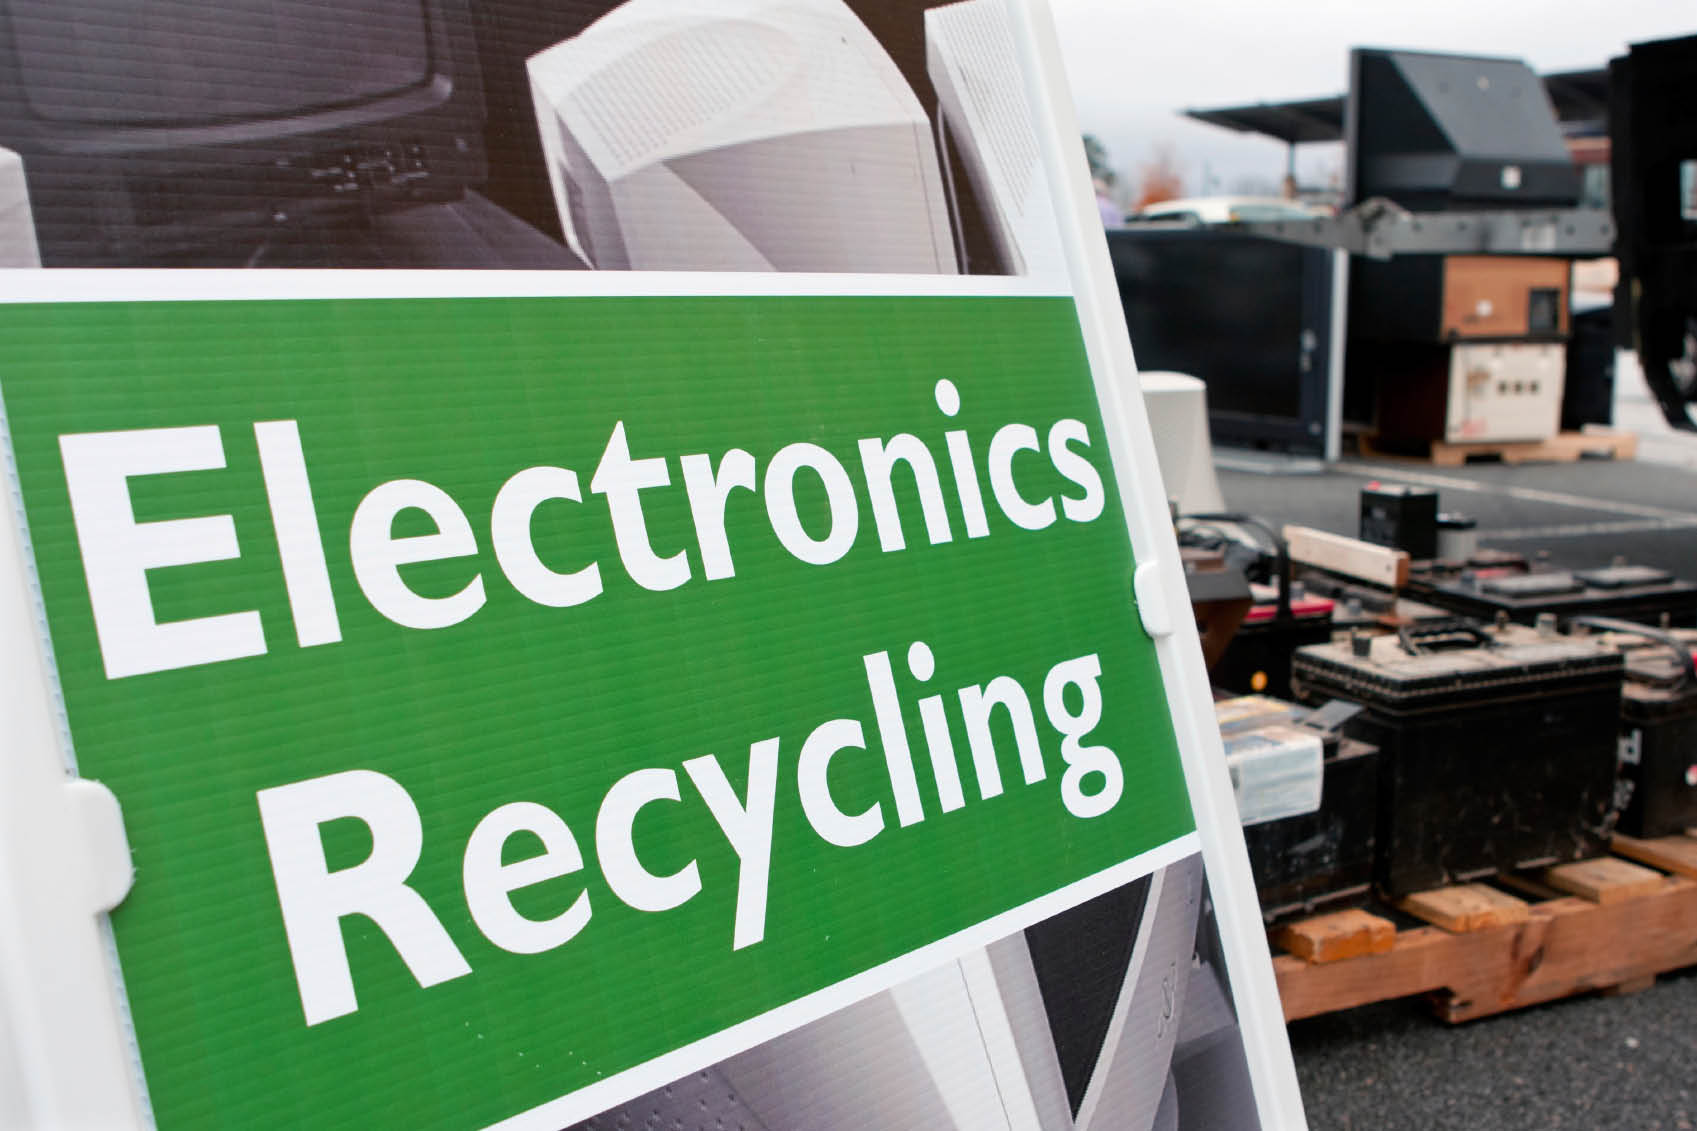 get rid of old tv get rid of old computer get rid of old laptop trash my laptop trash my computer where to recycle electronics